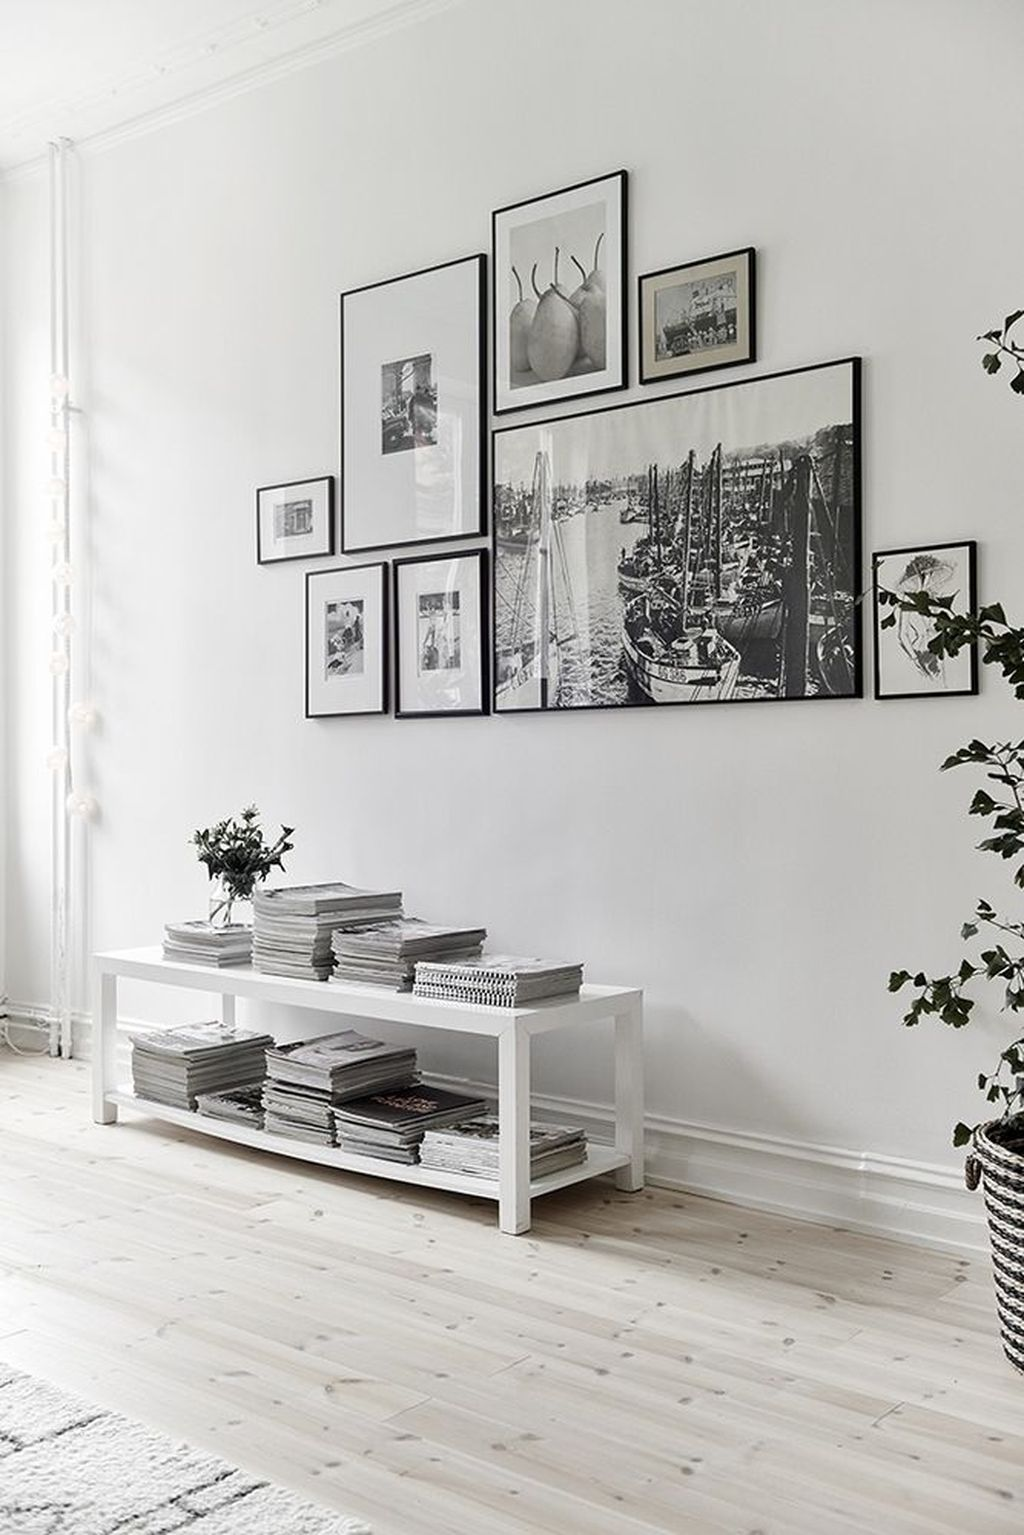 Awesome modern and minimalist wall art decoration ideas more at